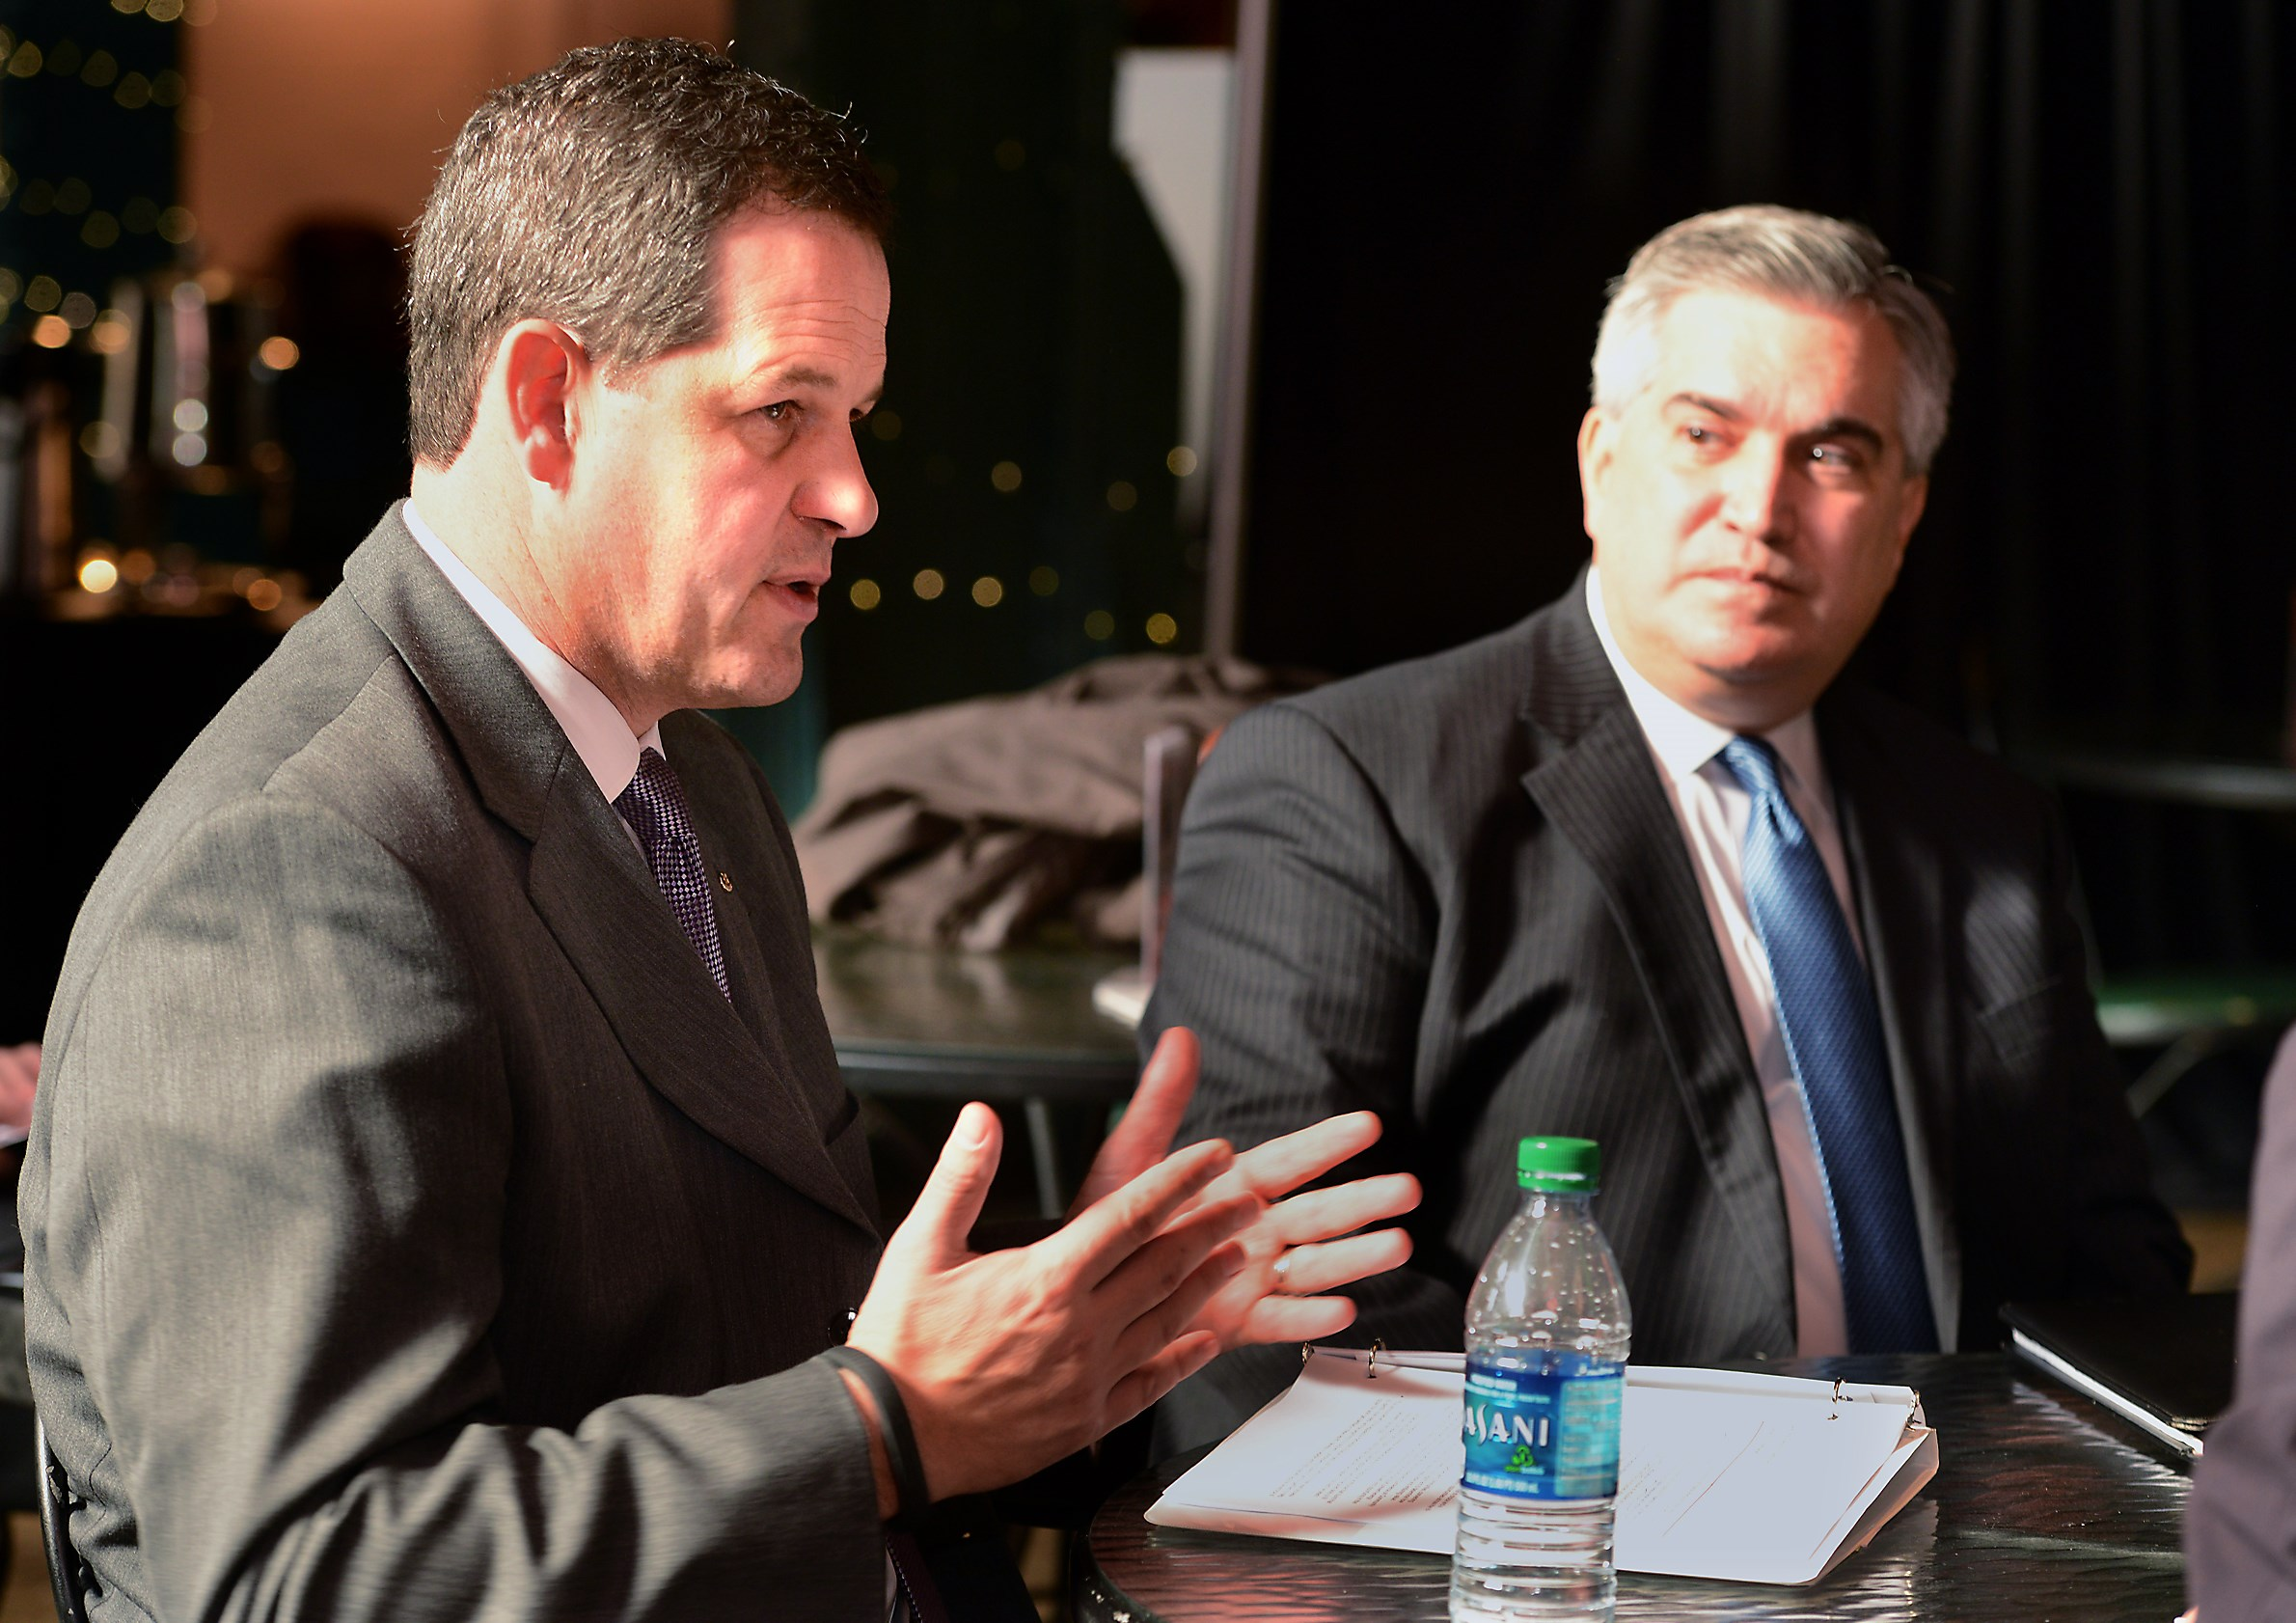 From left, Nigel Hearne, president of Chevron Appalachia, and Trip Oliver, also of Chevron, talk with the media following a news conference at the Sen. John Heinz History Center in the Strip District. The two were part of a panel announcing the Appalachia Partnership Initiative from the Chevron Corp.